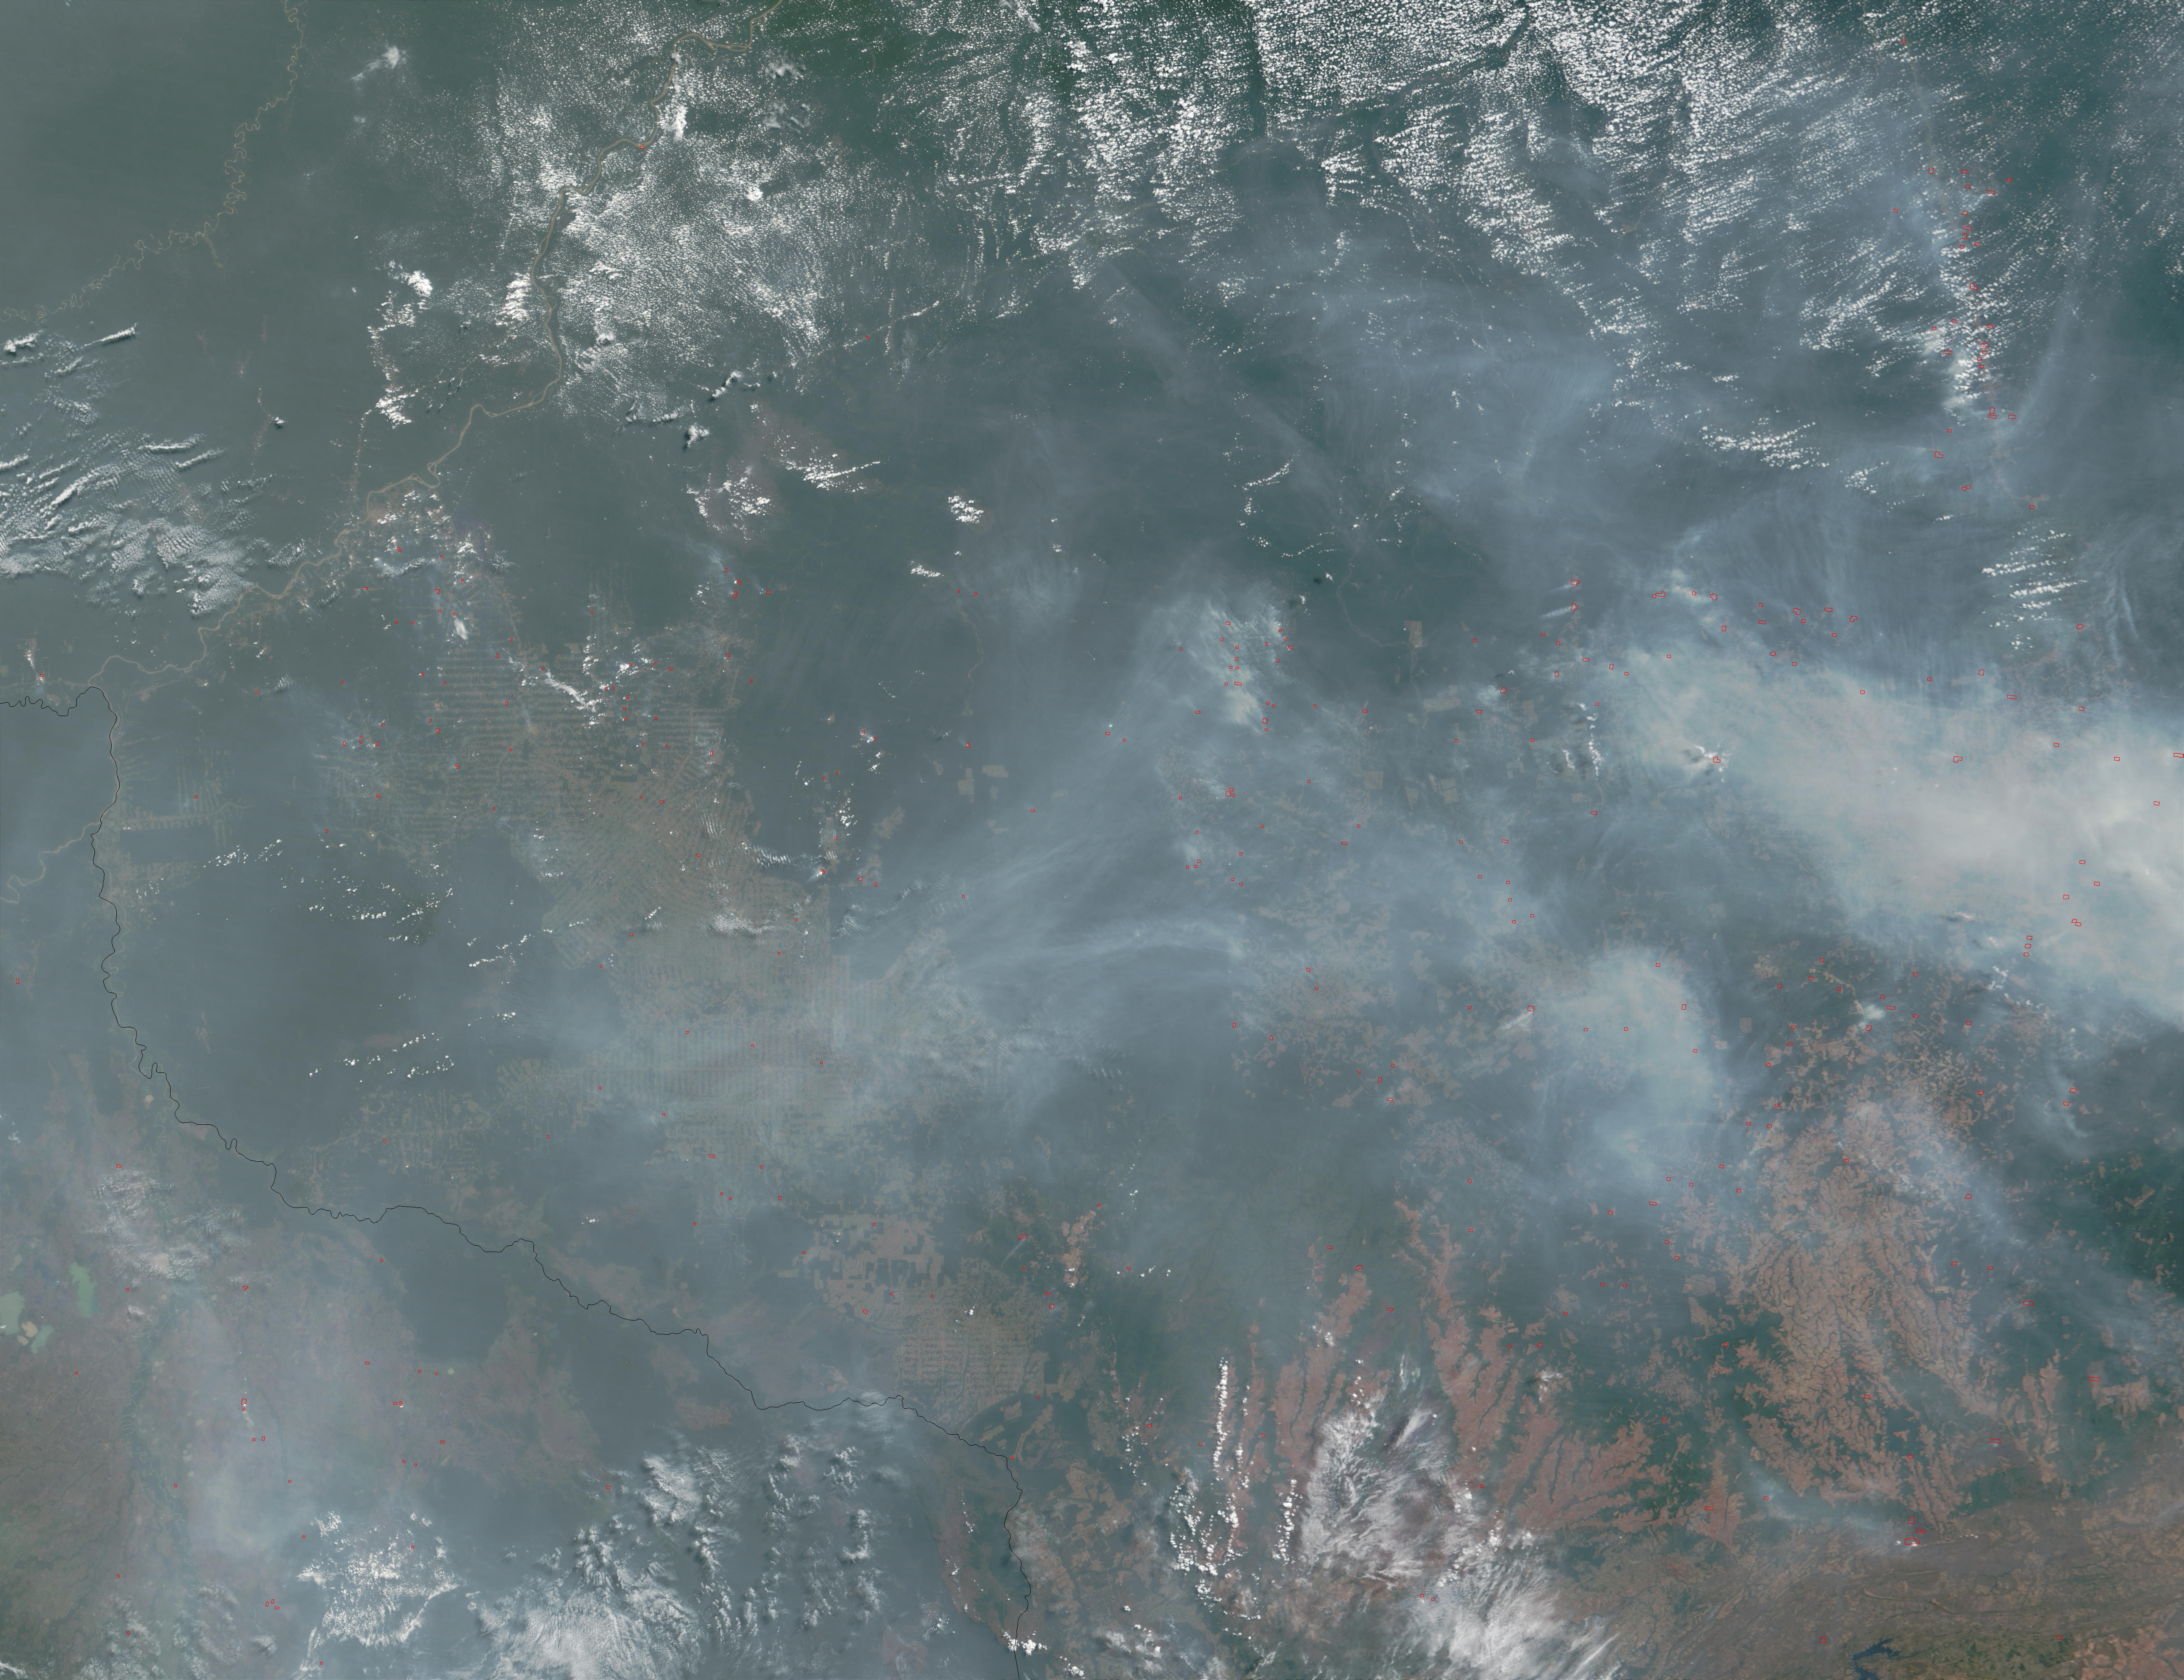 Fires and smoke in Mato Grosso and Rondonia, Brazil